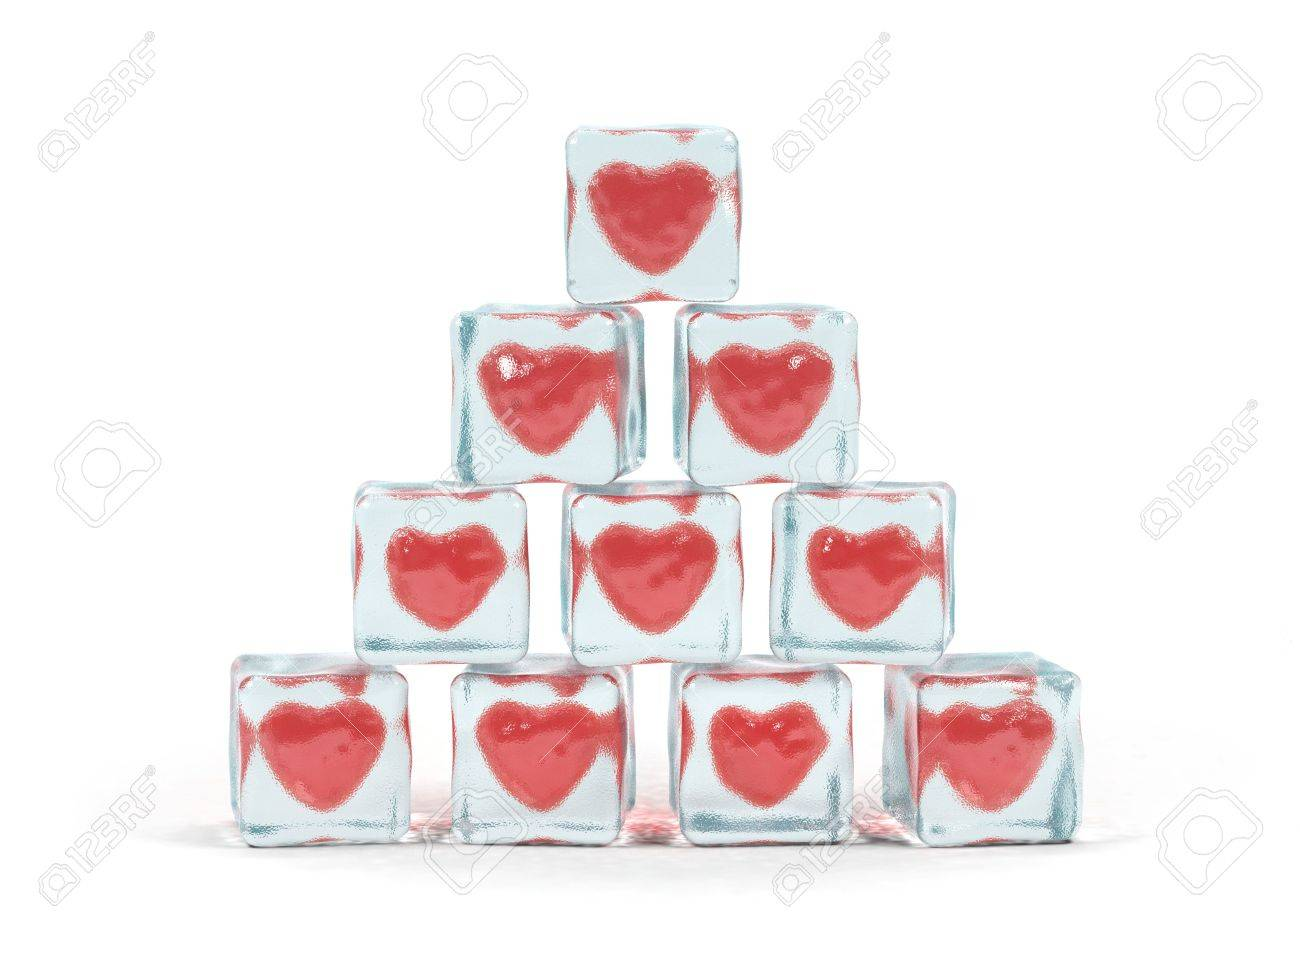 Hearts frozen in ice cube. 3D image. Stock Photo - 3177749